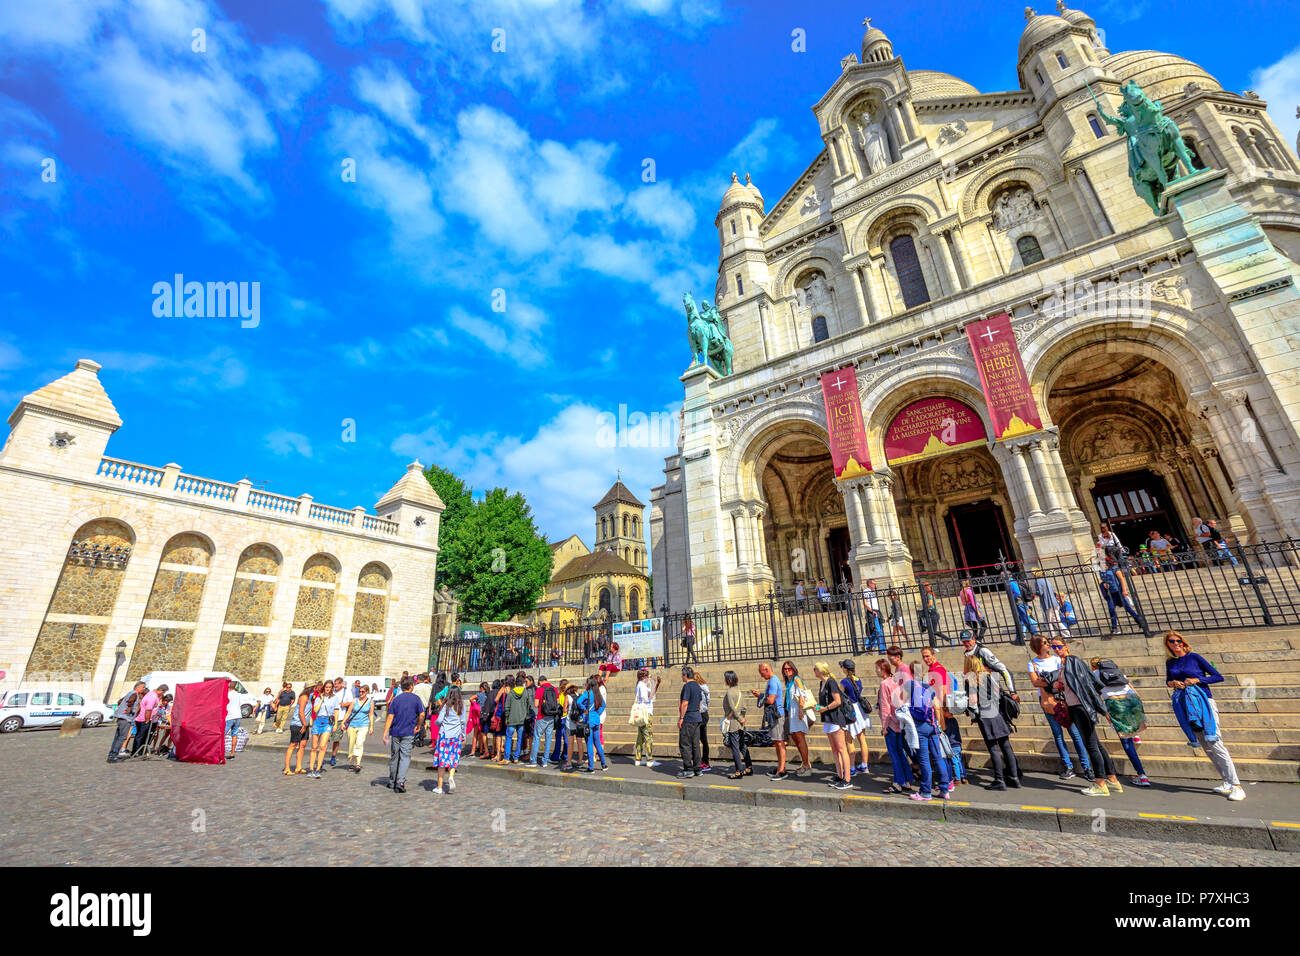 Paris, France - July 3, 2017: perspective view of people in front of Basilique du Sacre Coeur de Montmartre. Sacred Heart Church is a popular attraction and landmark in Paris. Sunny day blue sky. - Stock Image